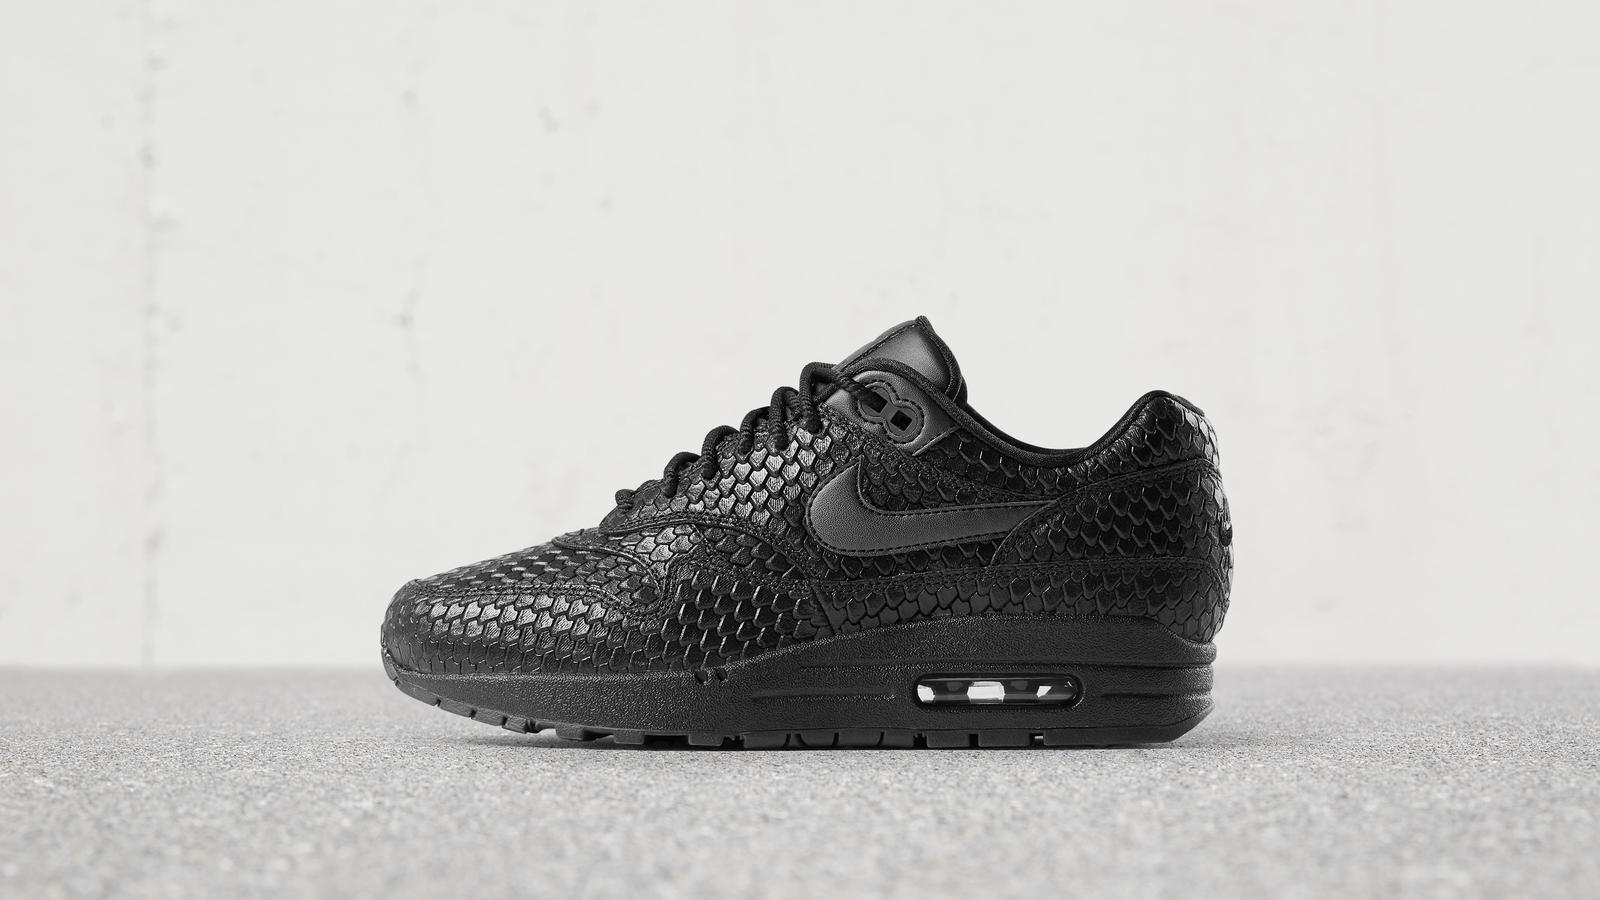 Nike Air Max 1 Ultra 2.0 Metallic Anaconda Black Nike News